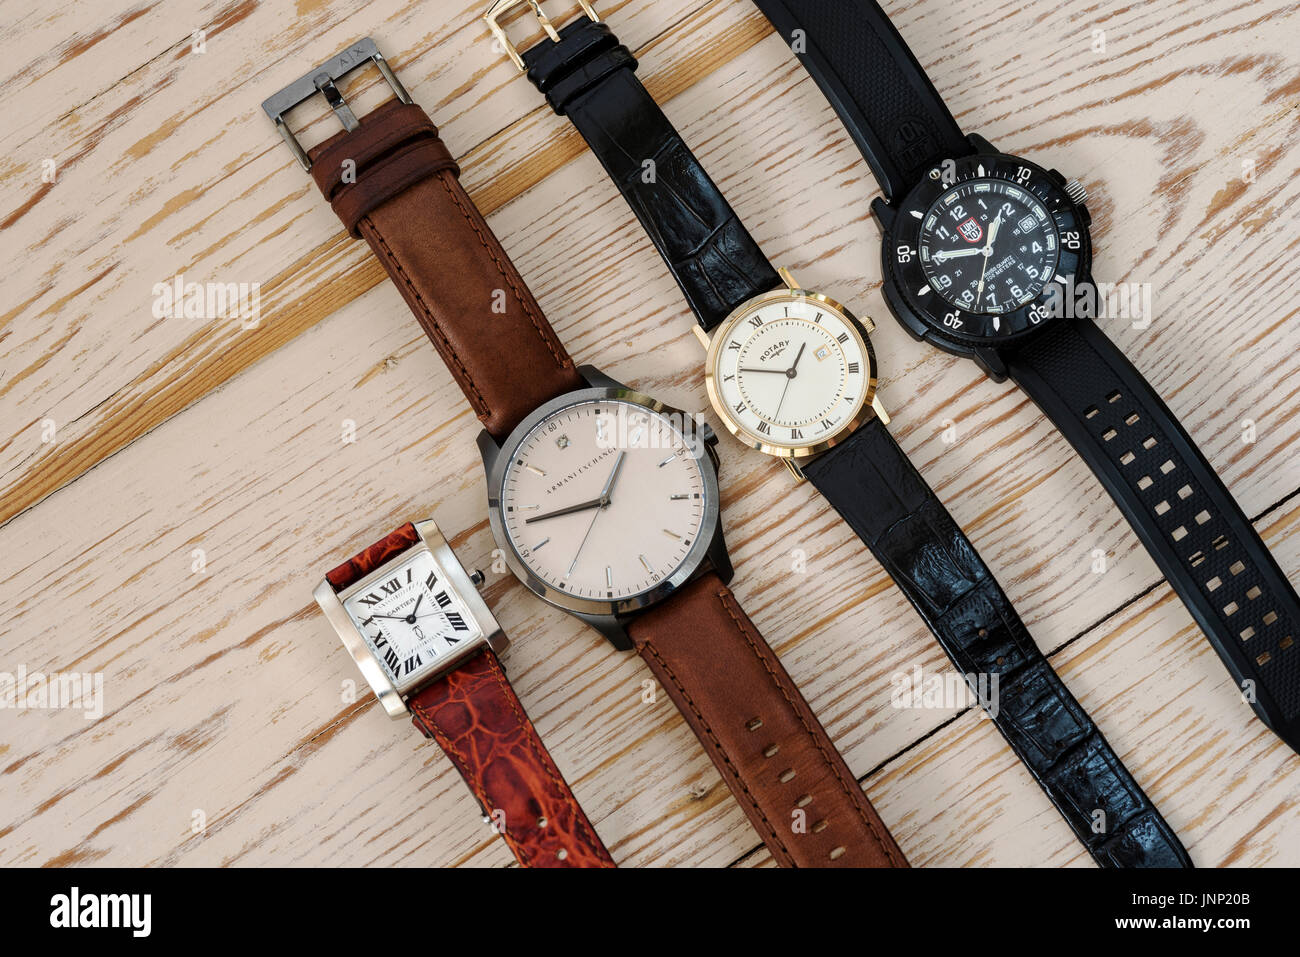 Group of four mens wristwatches, on a wooden background. - Stock Image